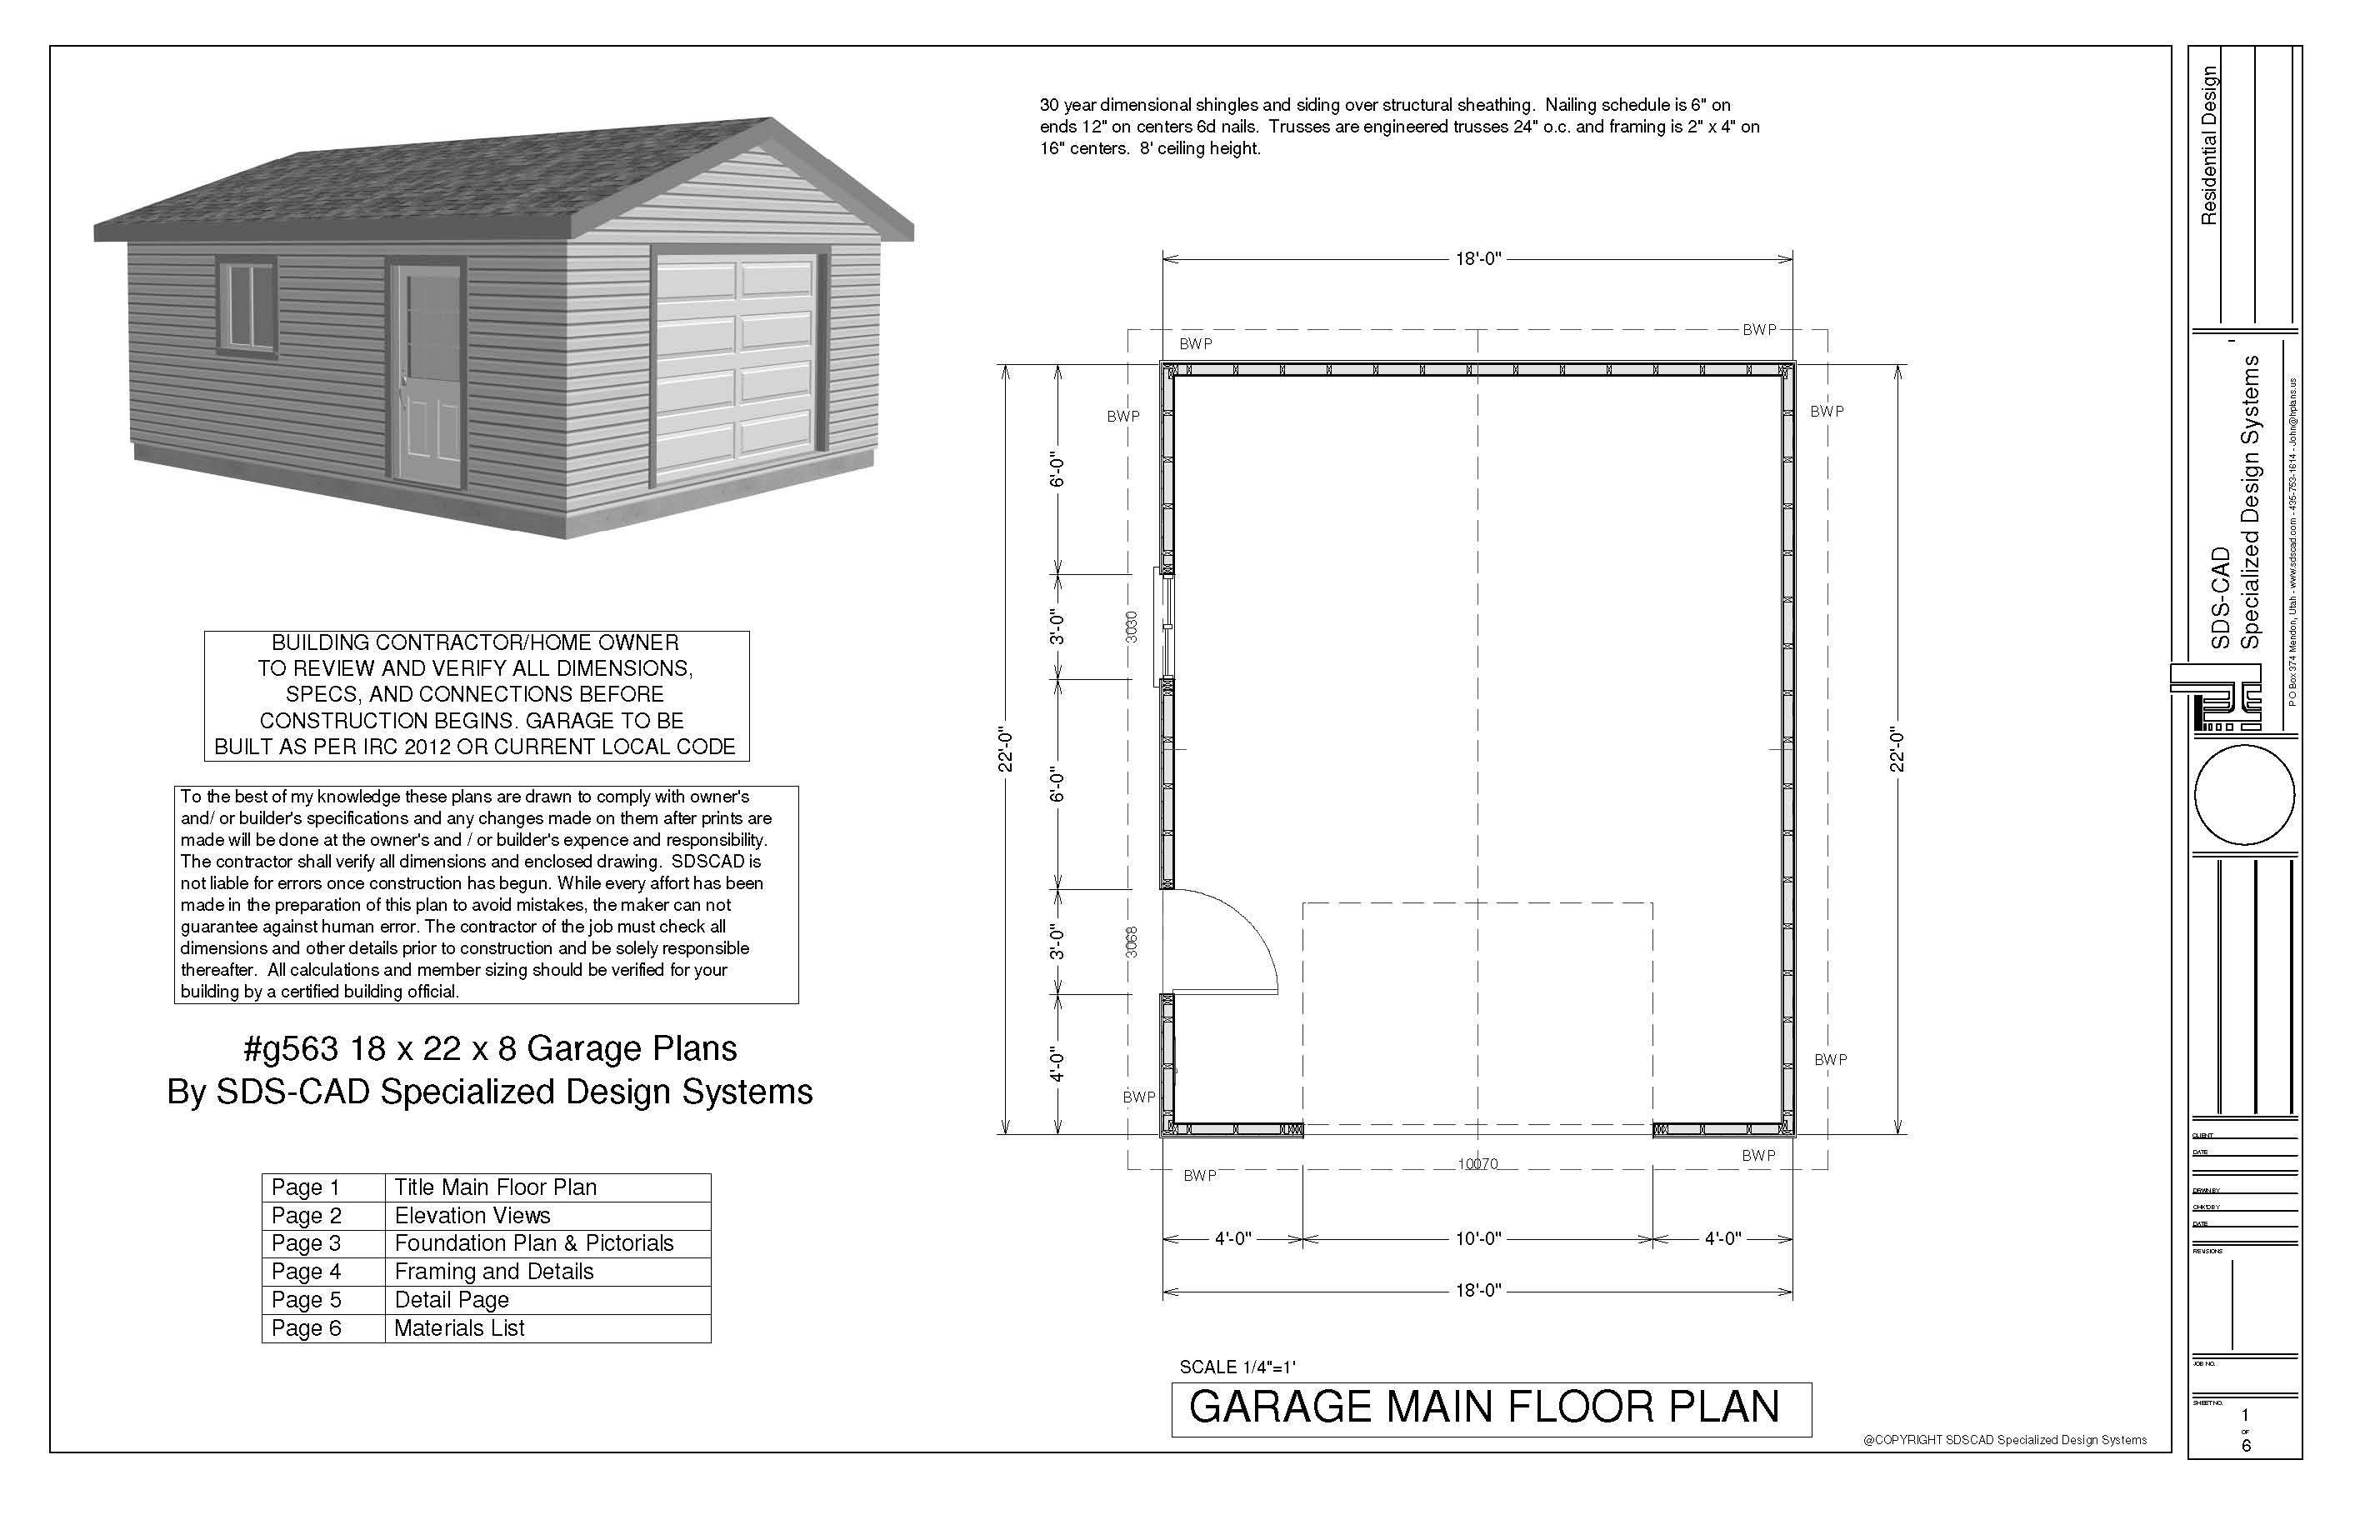 download free sample garage plan g563 18 x 22 x 8 garage